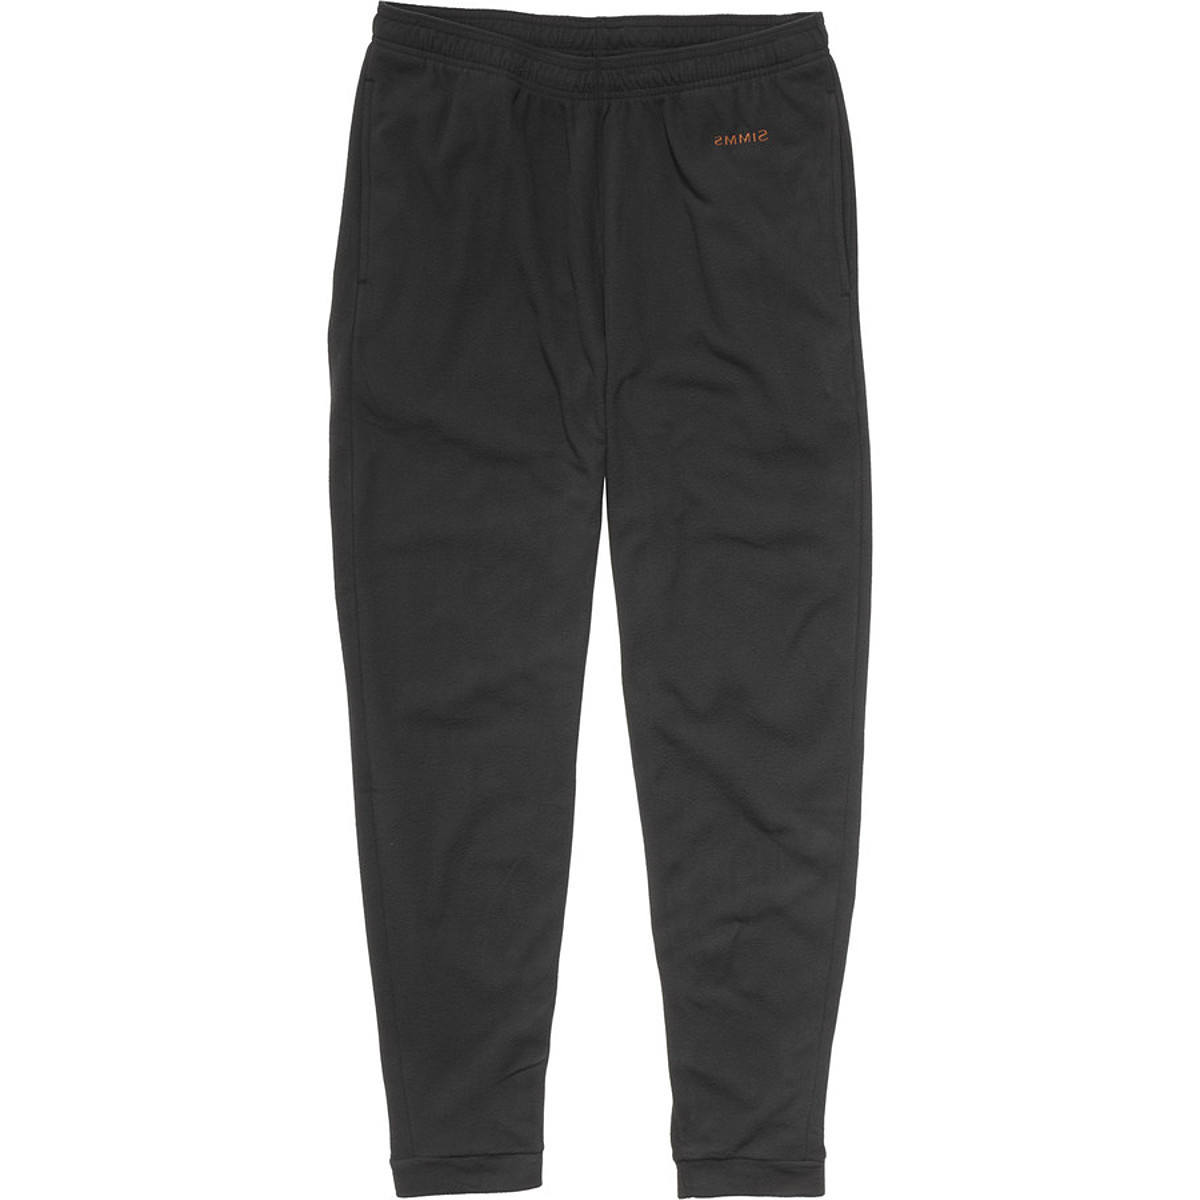 Simms Waderwick Thermal Pant - Men's